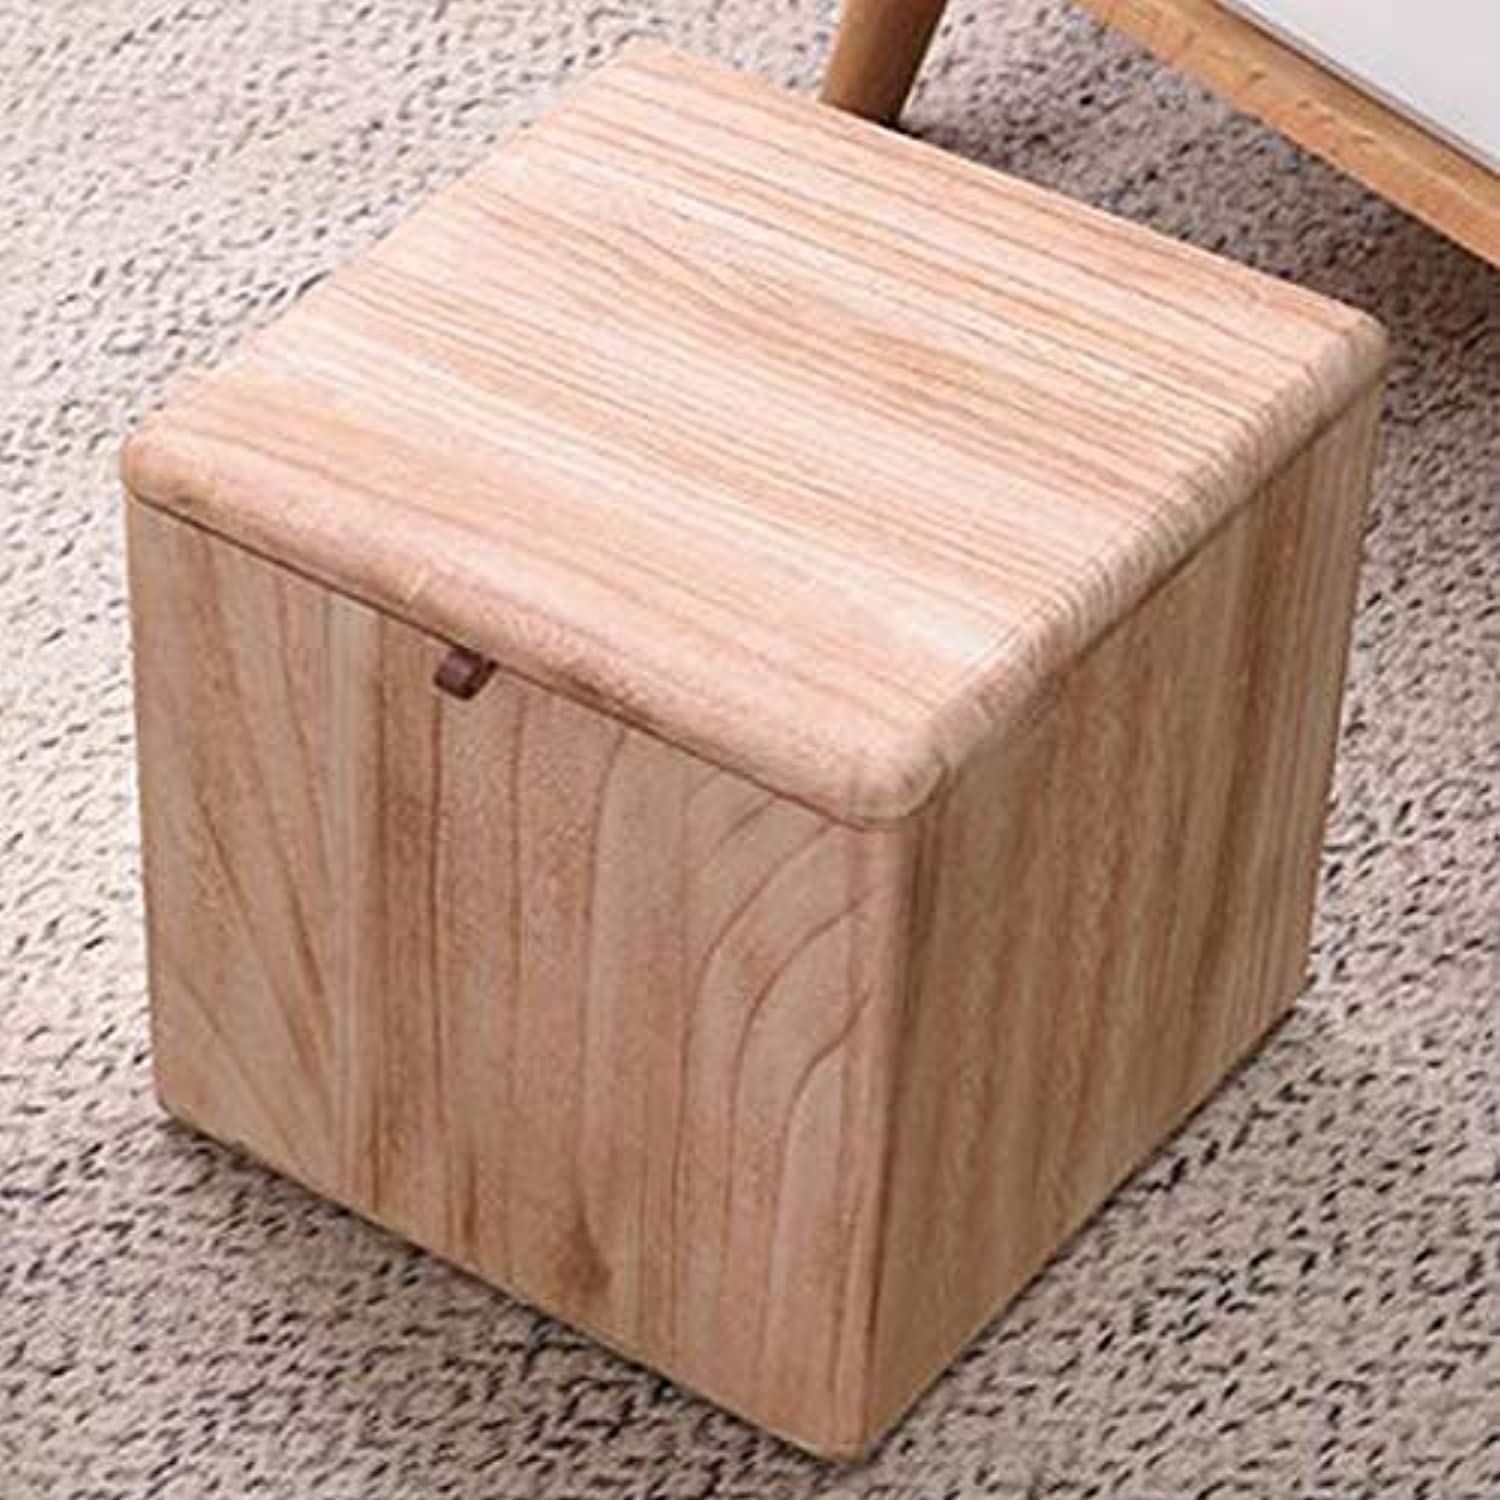 SYFO Home Multi-Function Square Stool, Fashion Fabric Stool, Creative Storage Stool, Simple shoes Bench Stool (color   White)